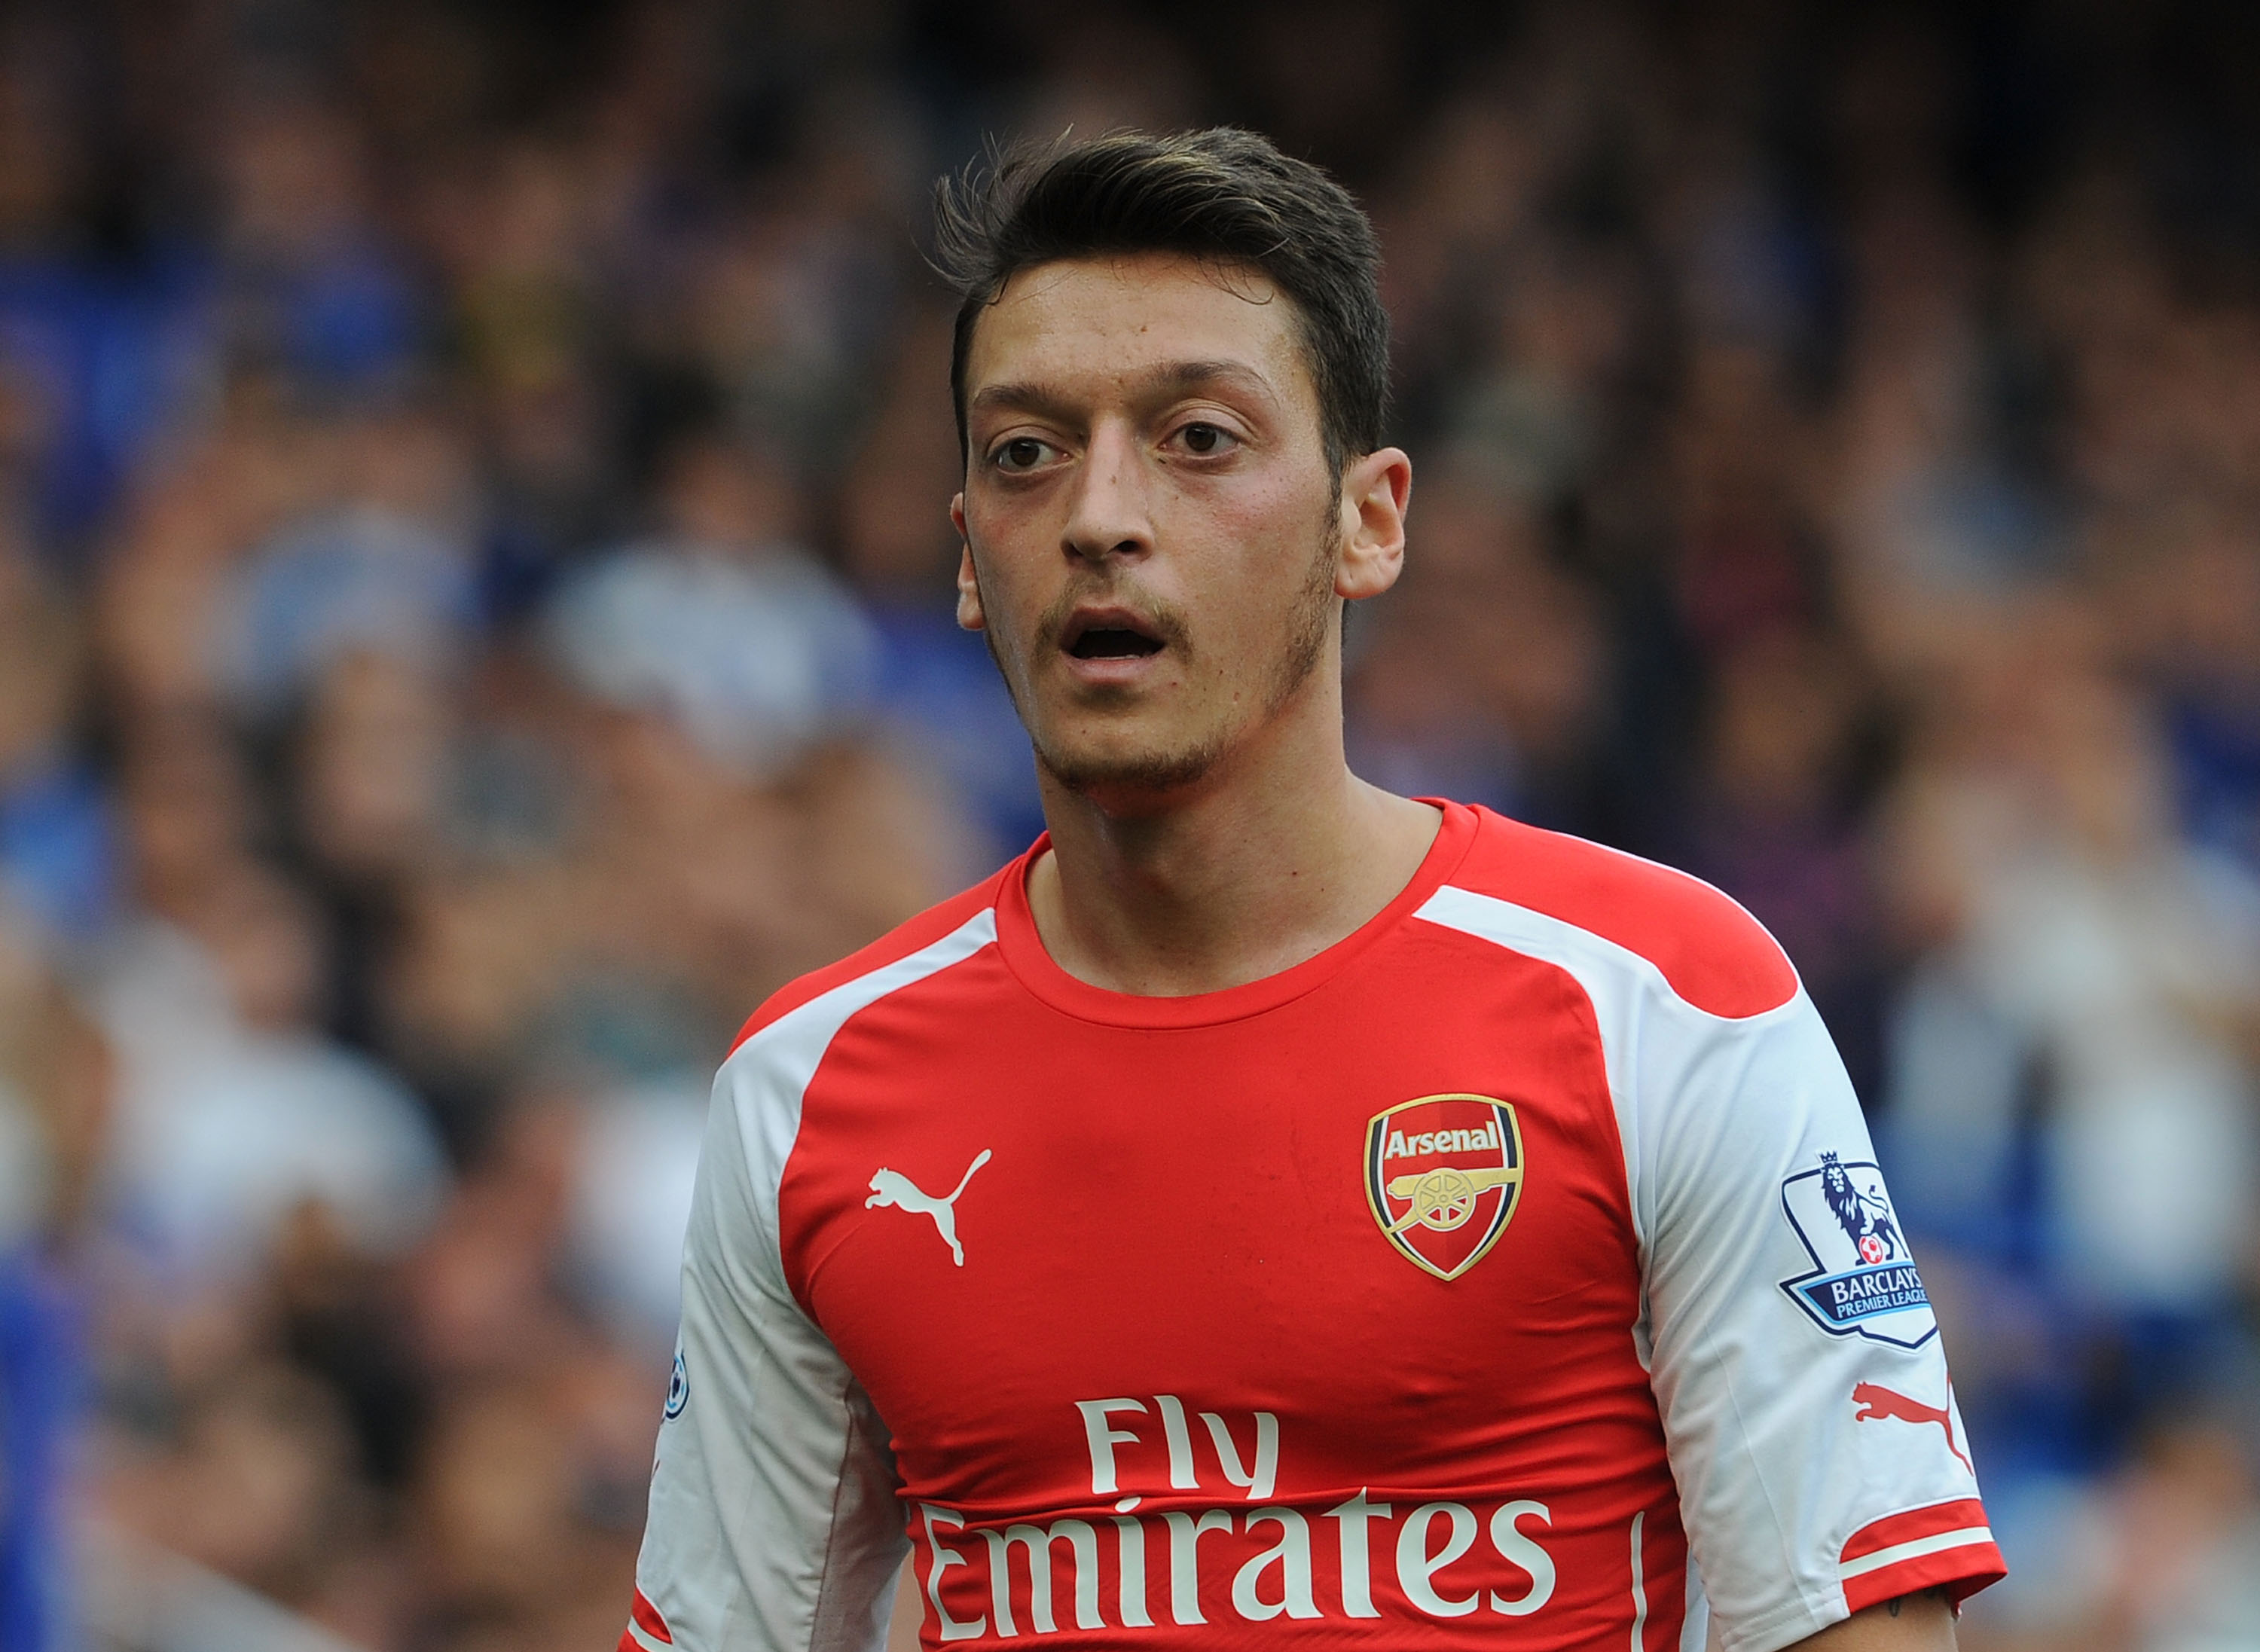 Mesut Ozil told he's NOT world class and just a flat-track bully for Arsenal